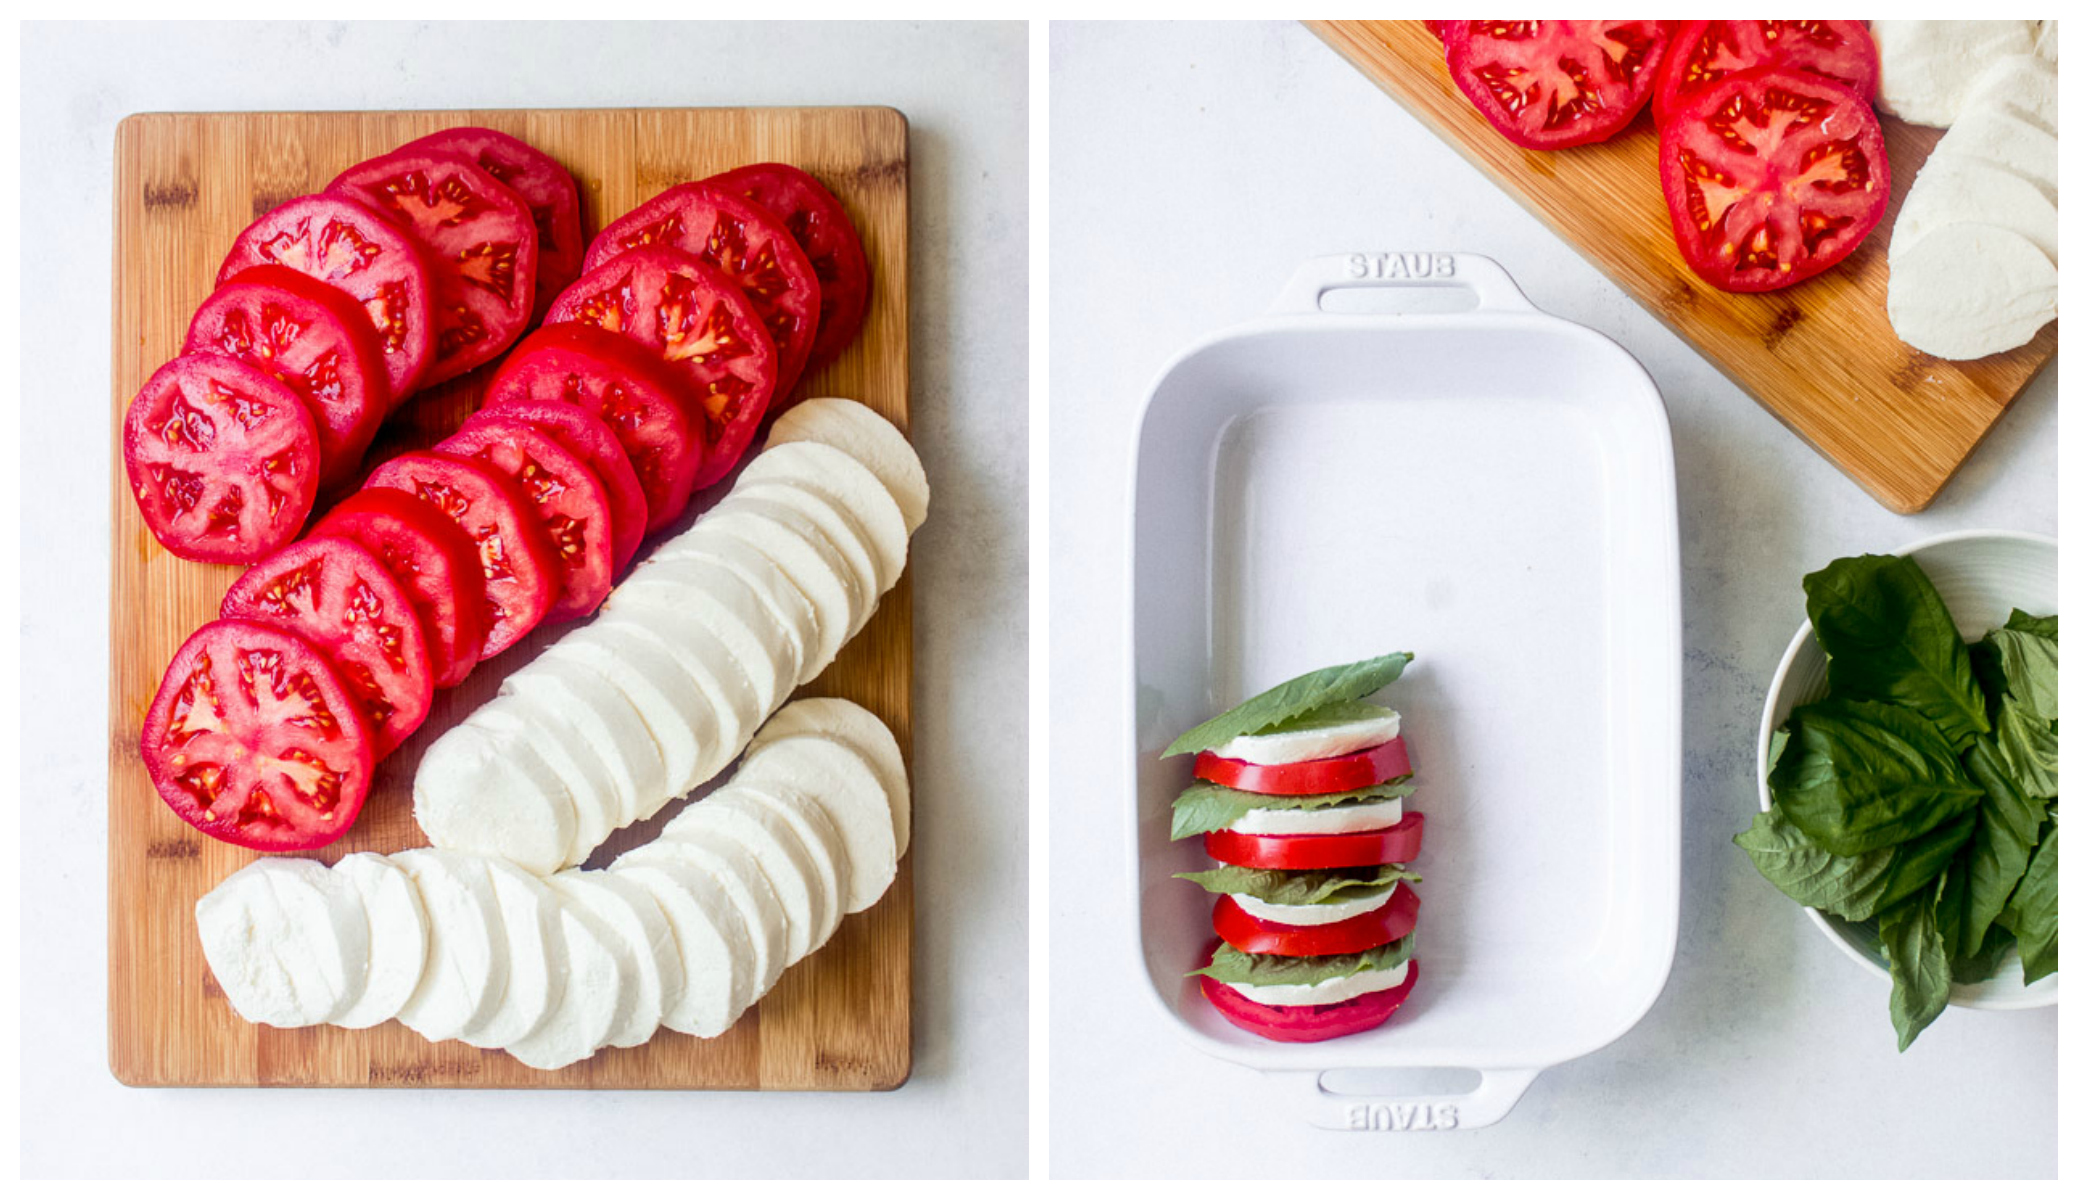 Step by step on how to make tomato mozzarella salad